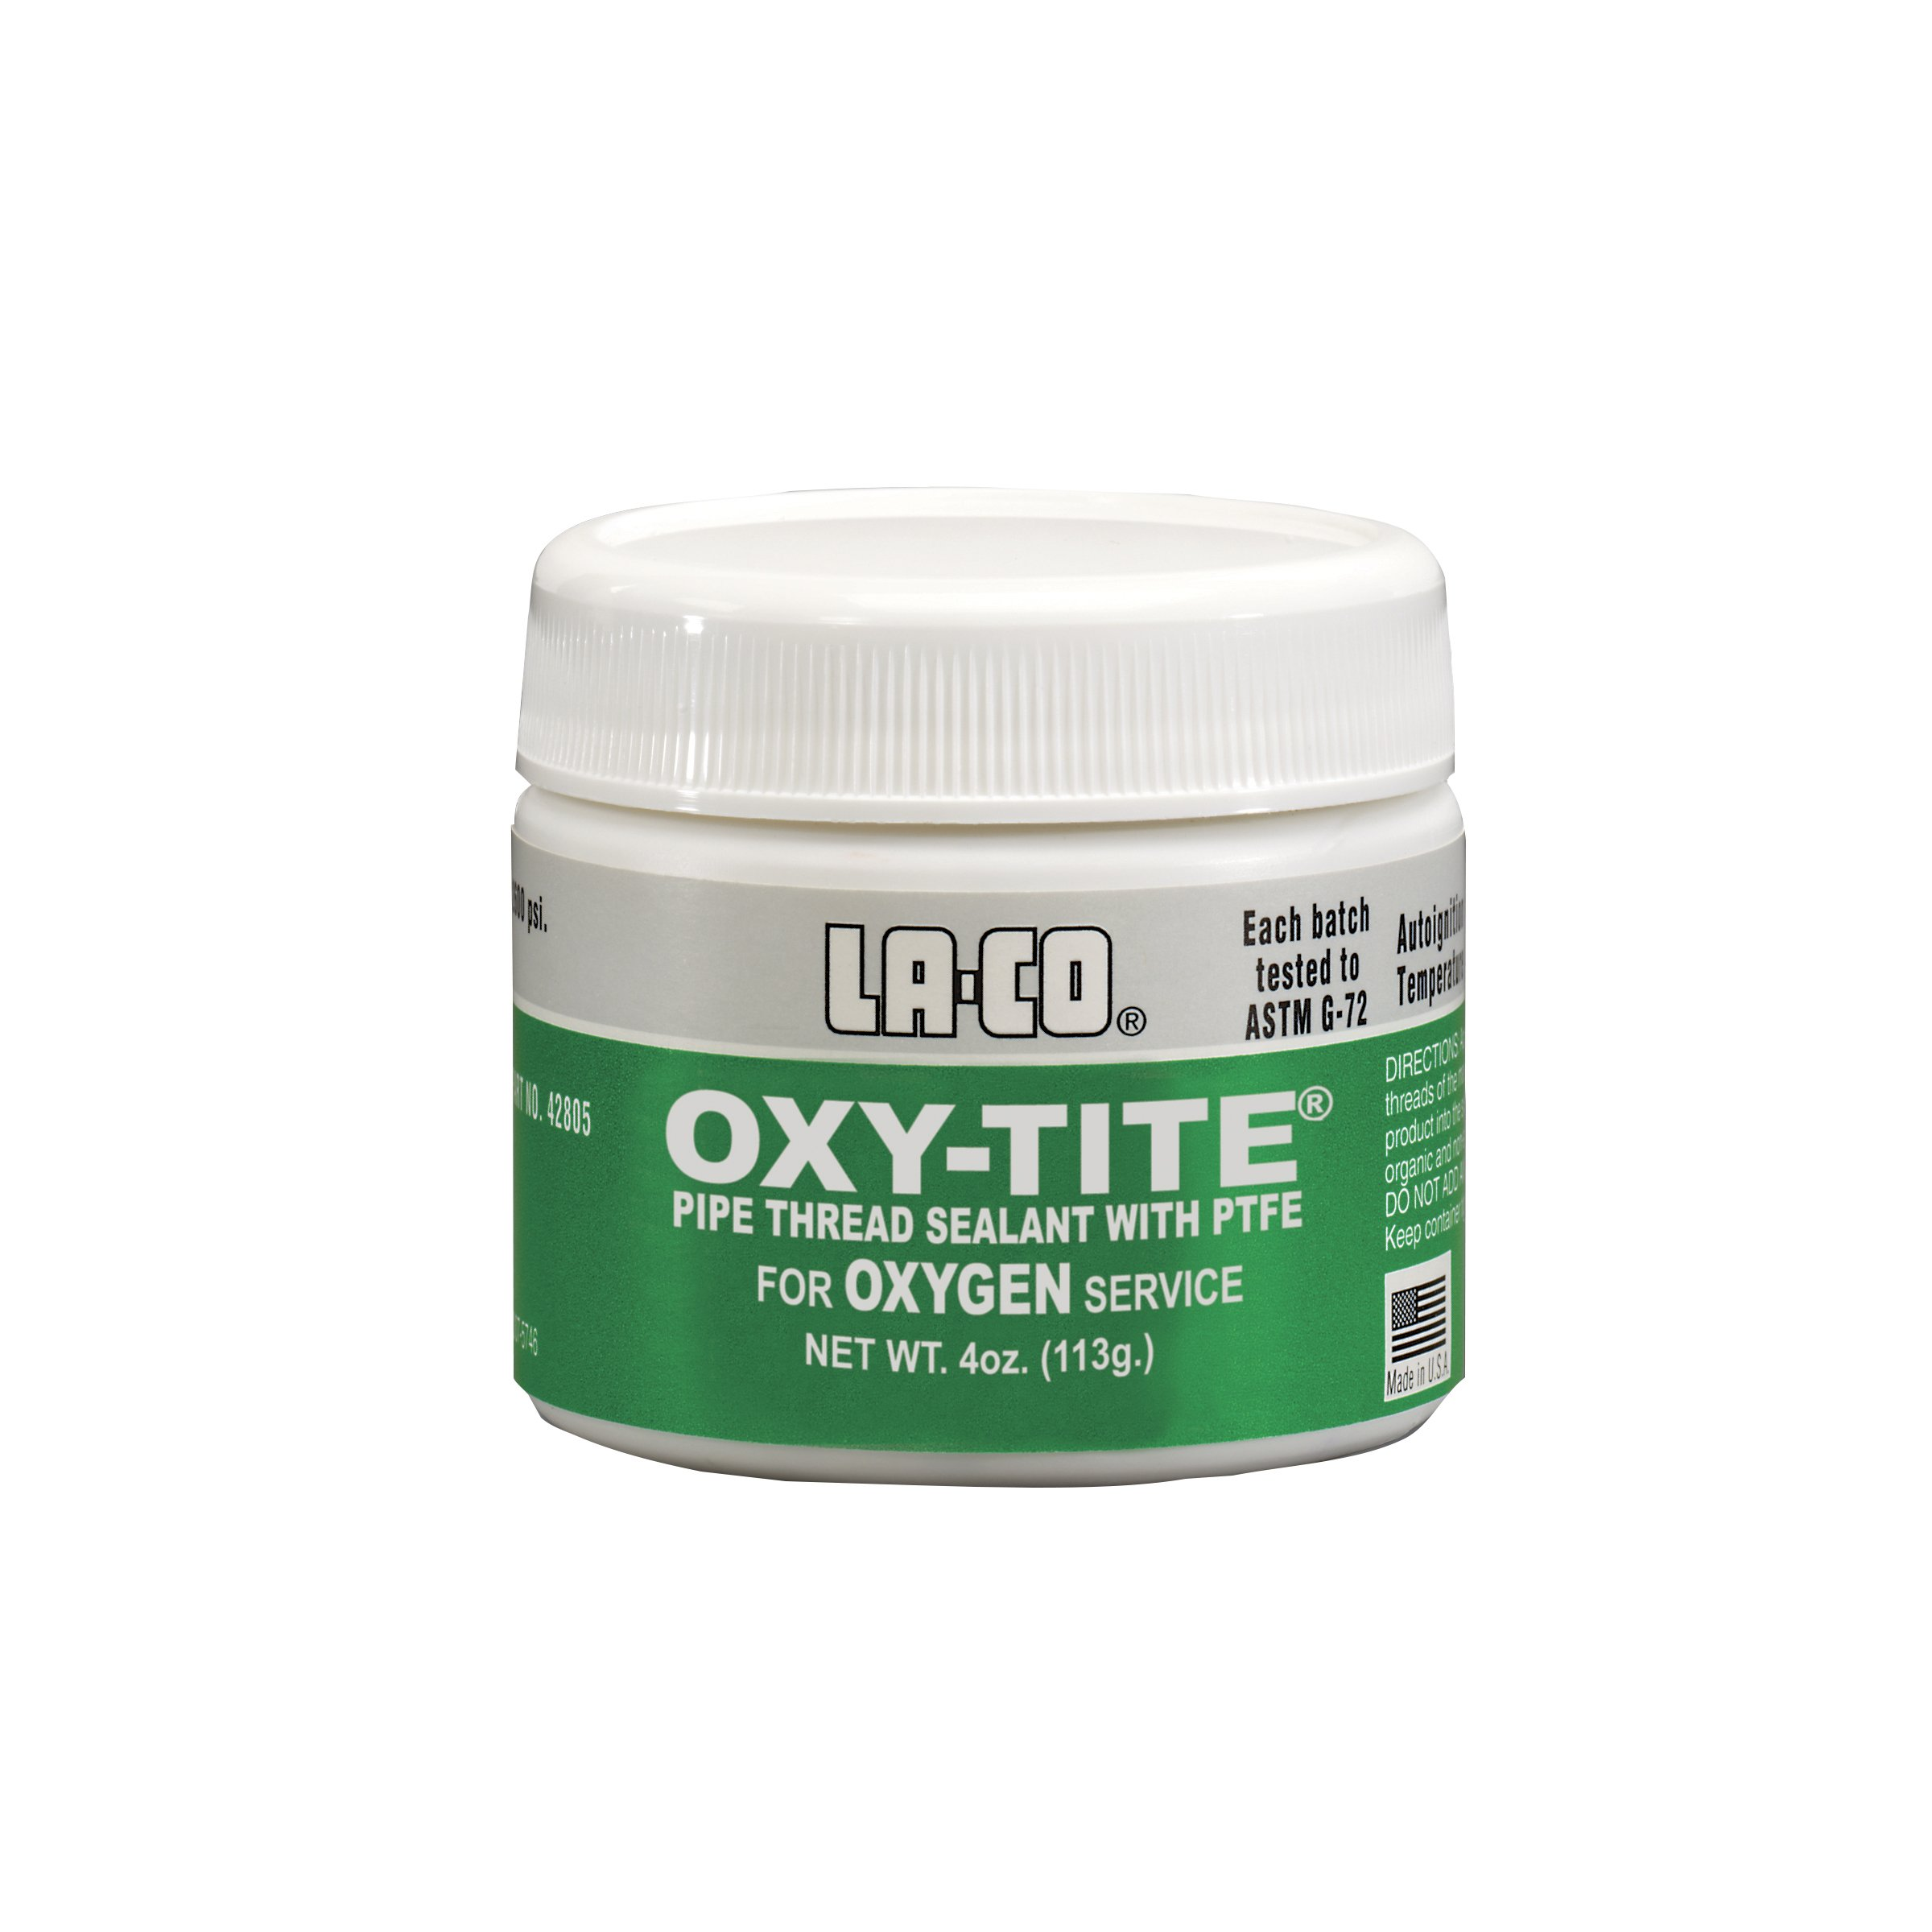 LA-CO Oxy-Tite, Premium Pipe Thread Sealant Paste with PTFE, -320 to 450 Degree F Temperature, 4 oz by La-Co